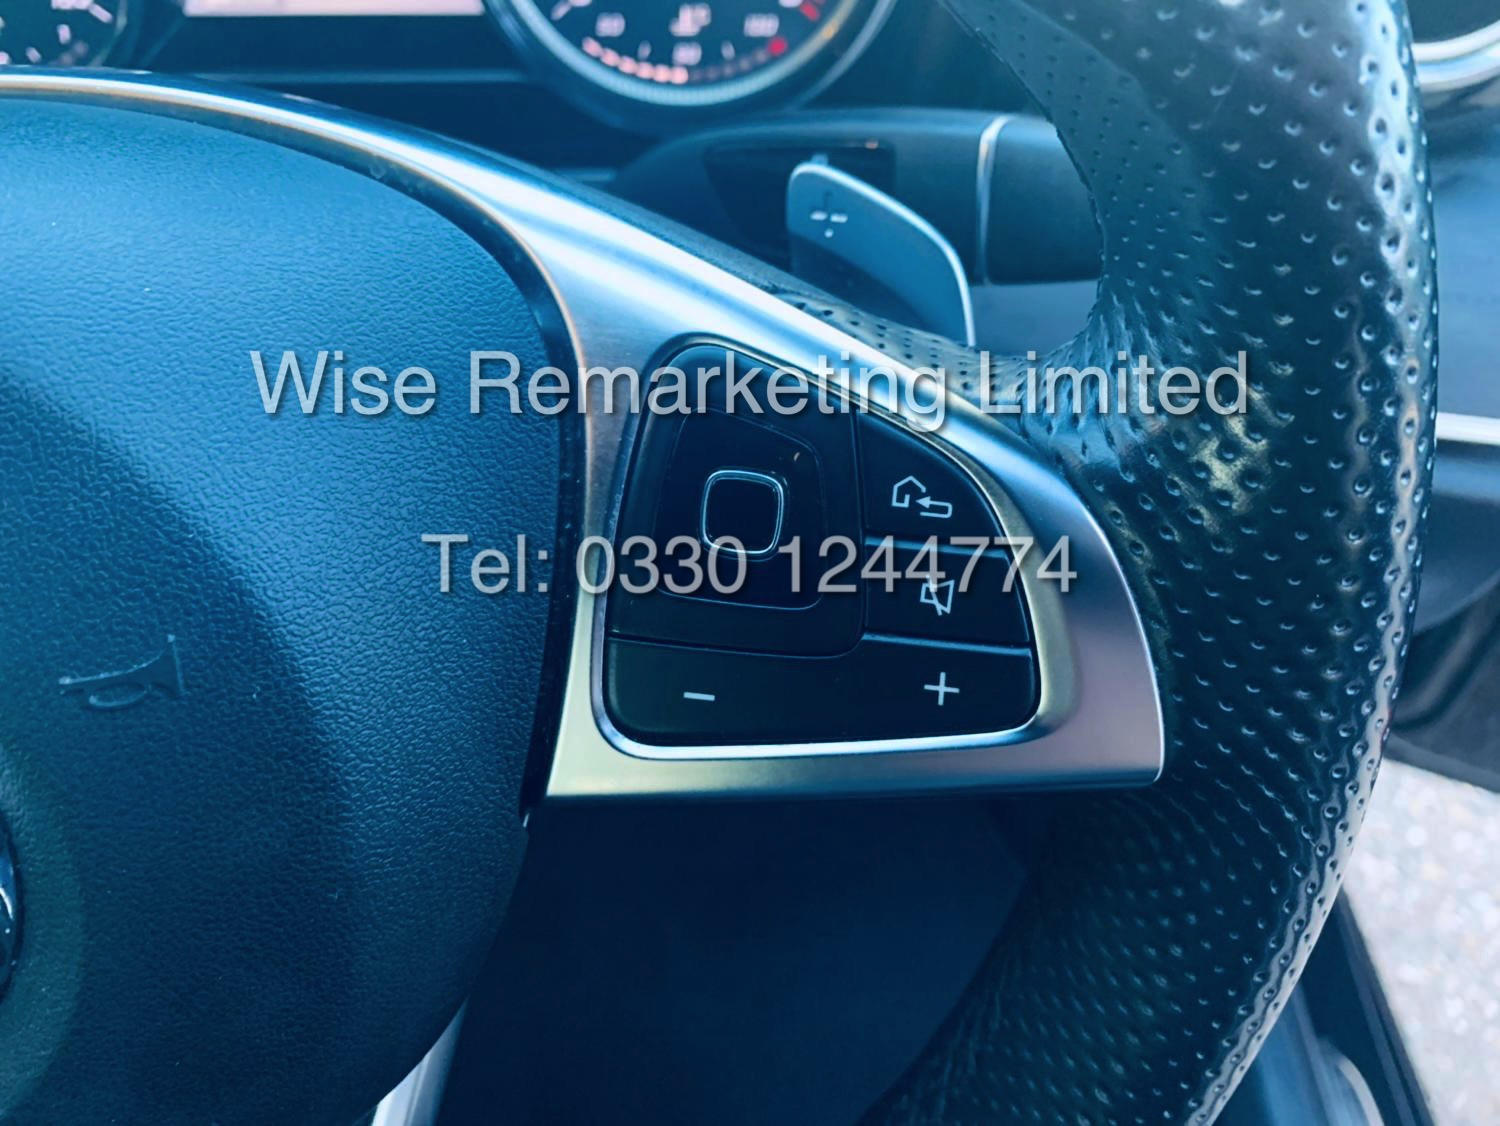 MERCEDES E CLASS ESTATE E220D AMG LINE 2017 / 9G -TRONIC / *LOW MILES* / 1 OWNER - Image 24 of 42